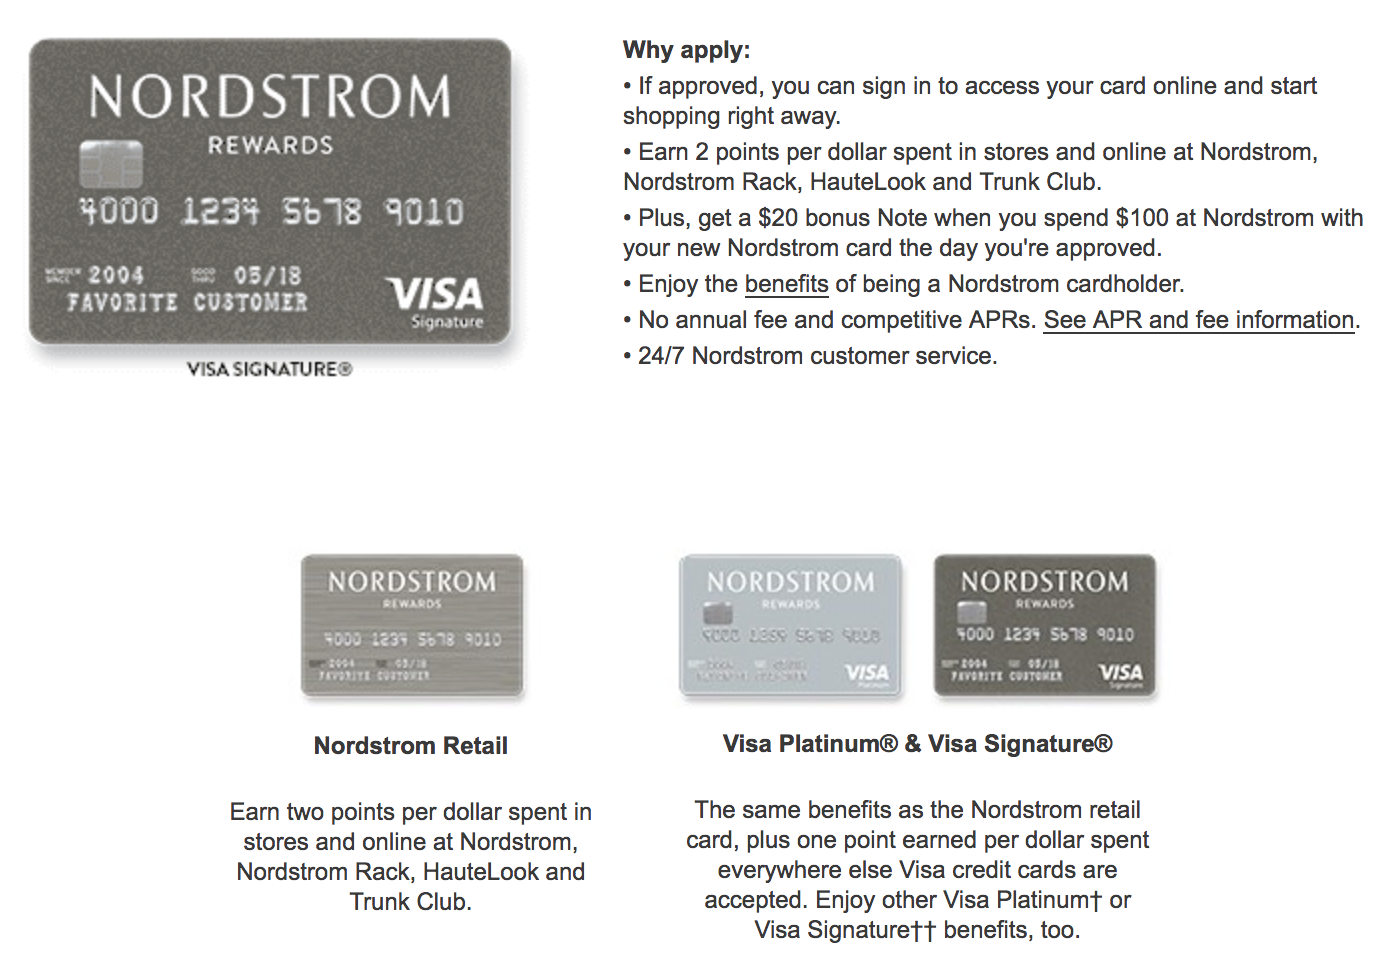 The different Nordstrom cards you can get